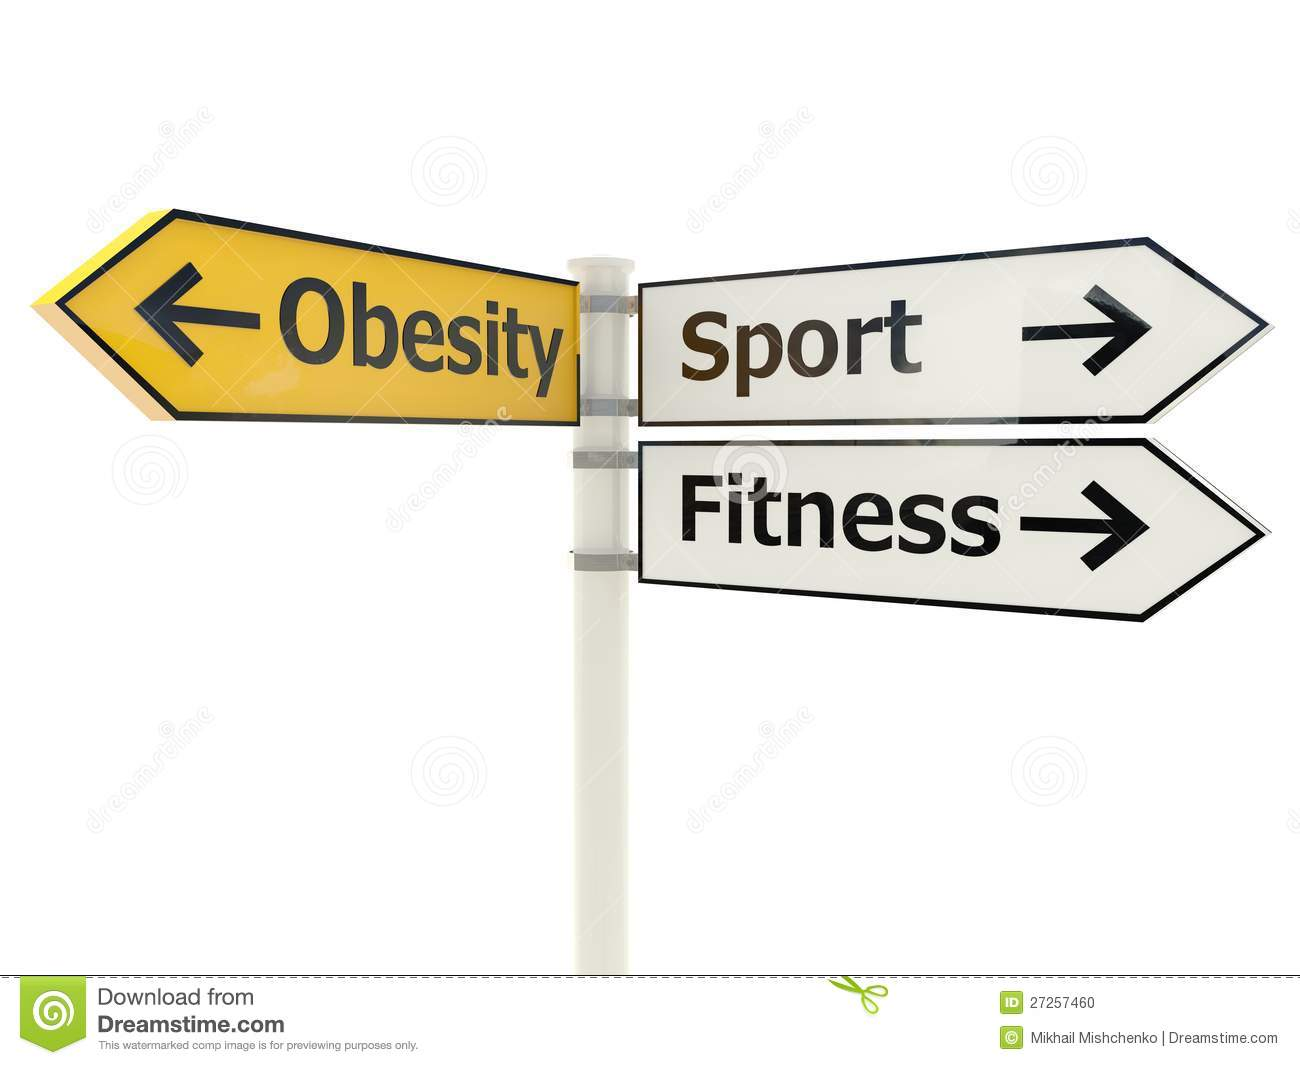 Obesity Road Sign Stock Photo